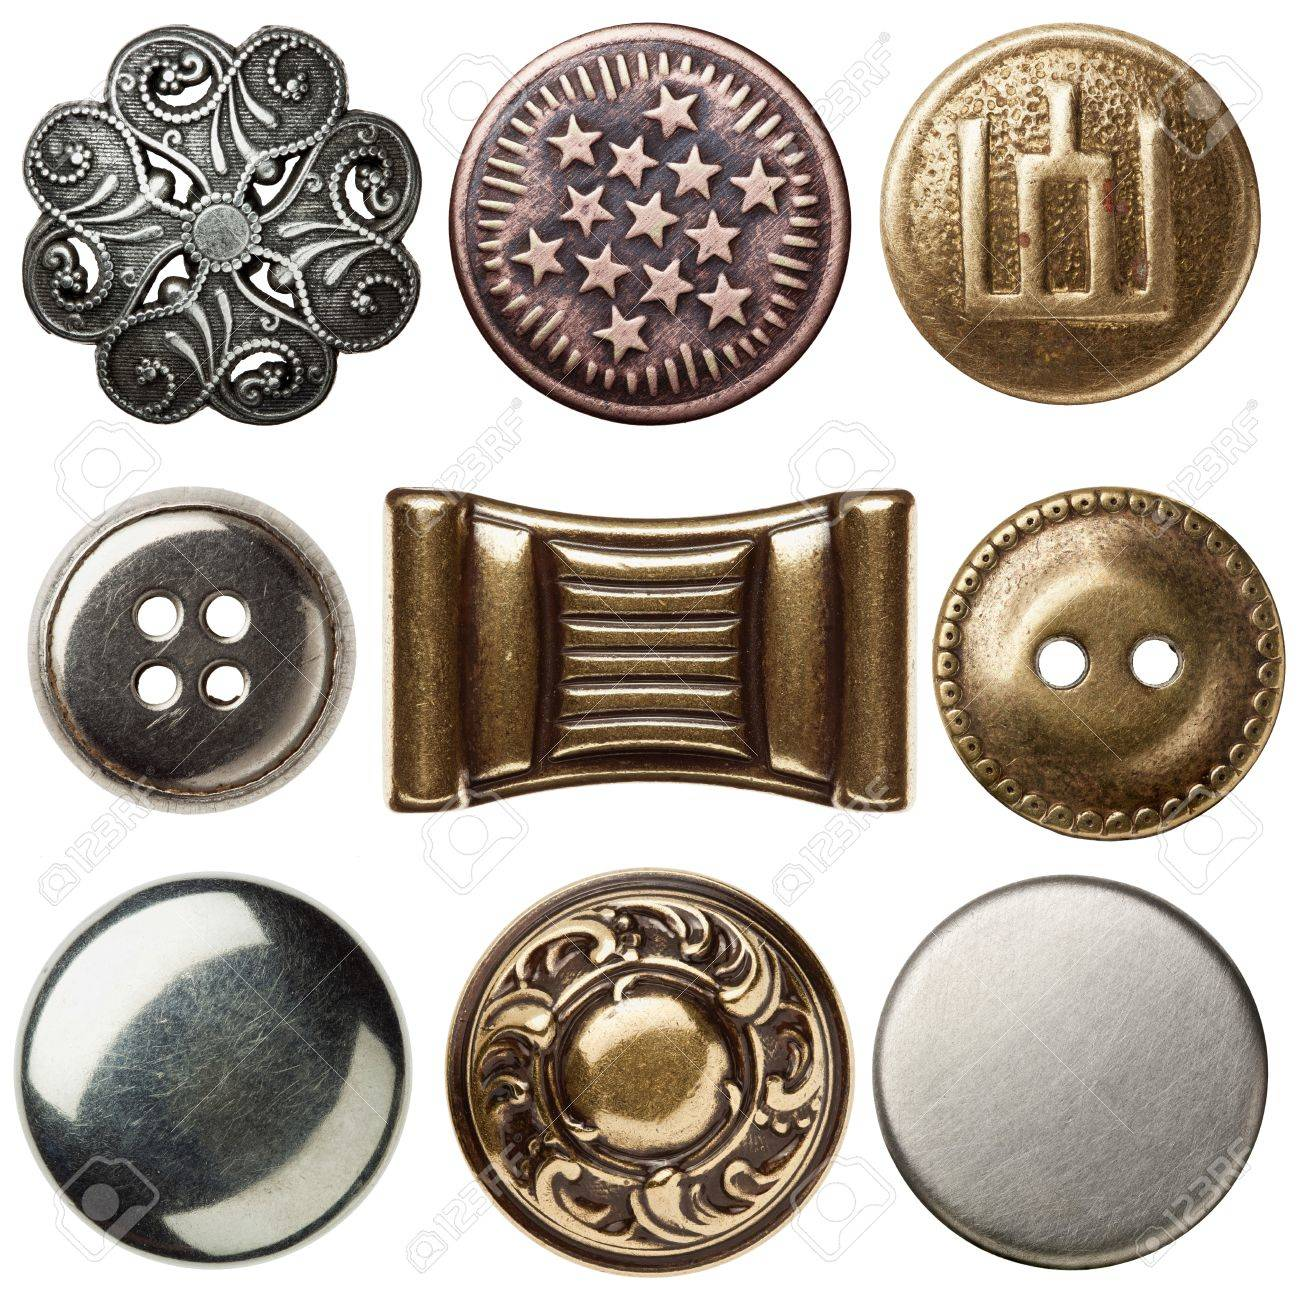 Vintage metal sewing buttons, isolated - 14752767